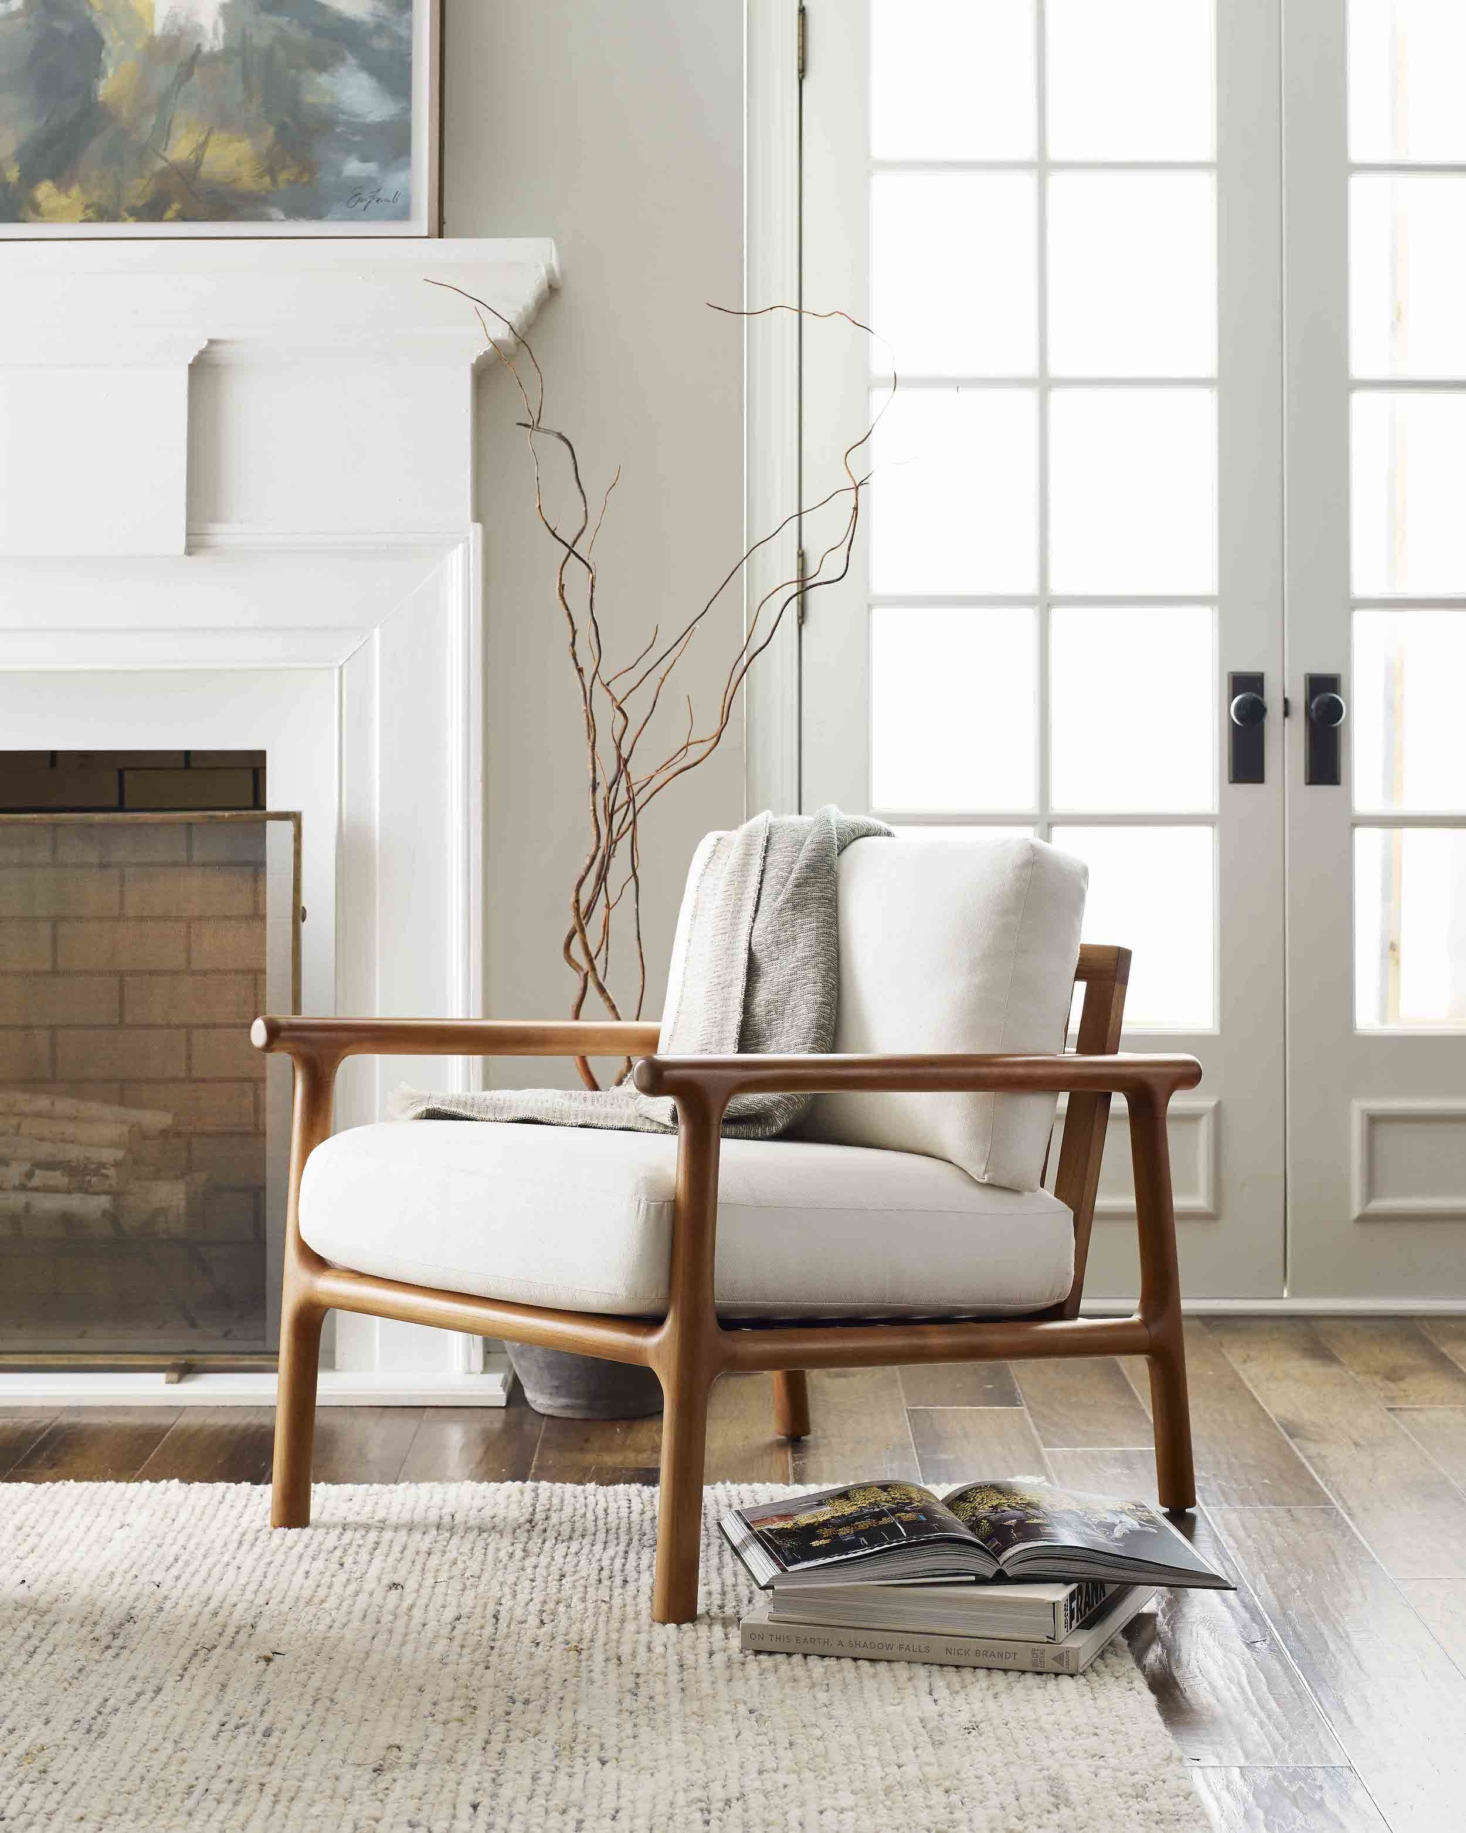 The new Laguna Chair has a sustainably sourced, heirloom-quality teak frame and a Scandinavian spirit; the generous cushions are available in over 575 fabrics and 40 leathers.